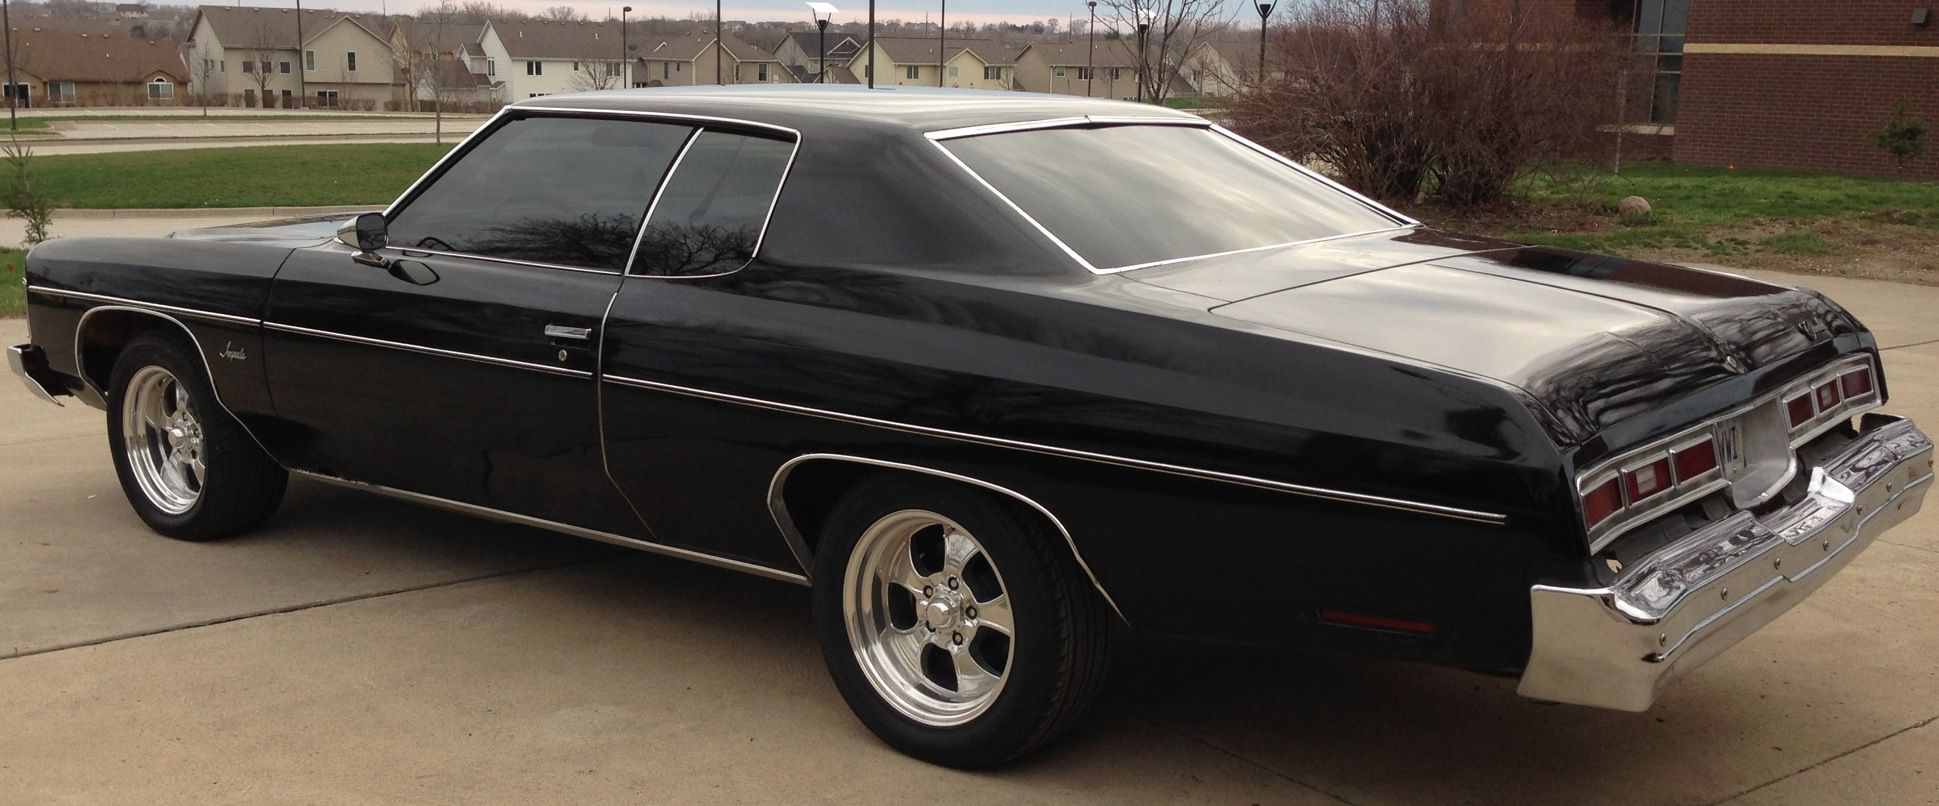 small resolution of 1974 impala sport coupe 400 engine